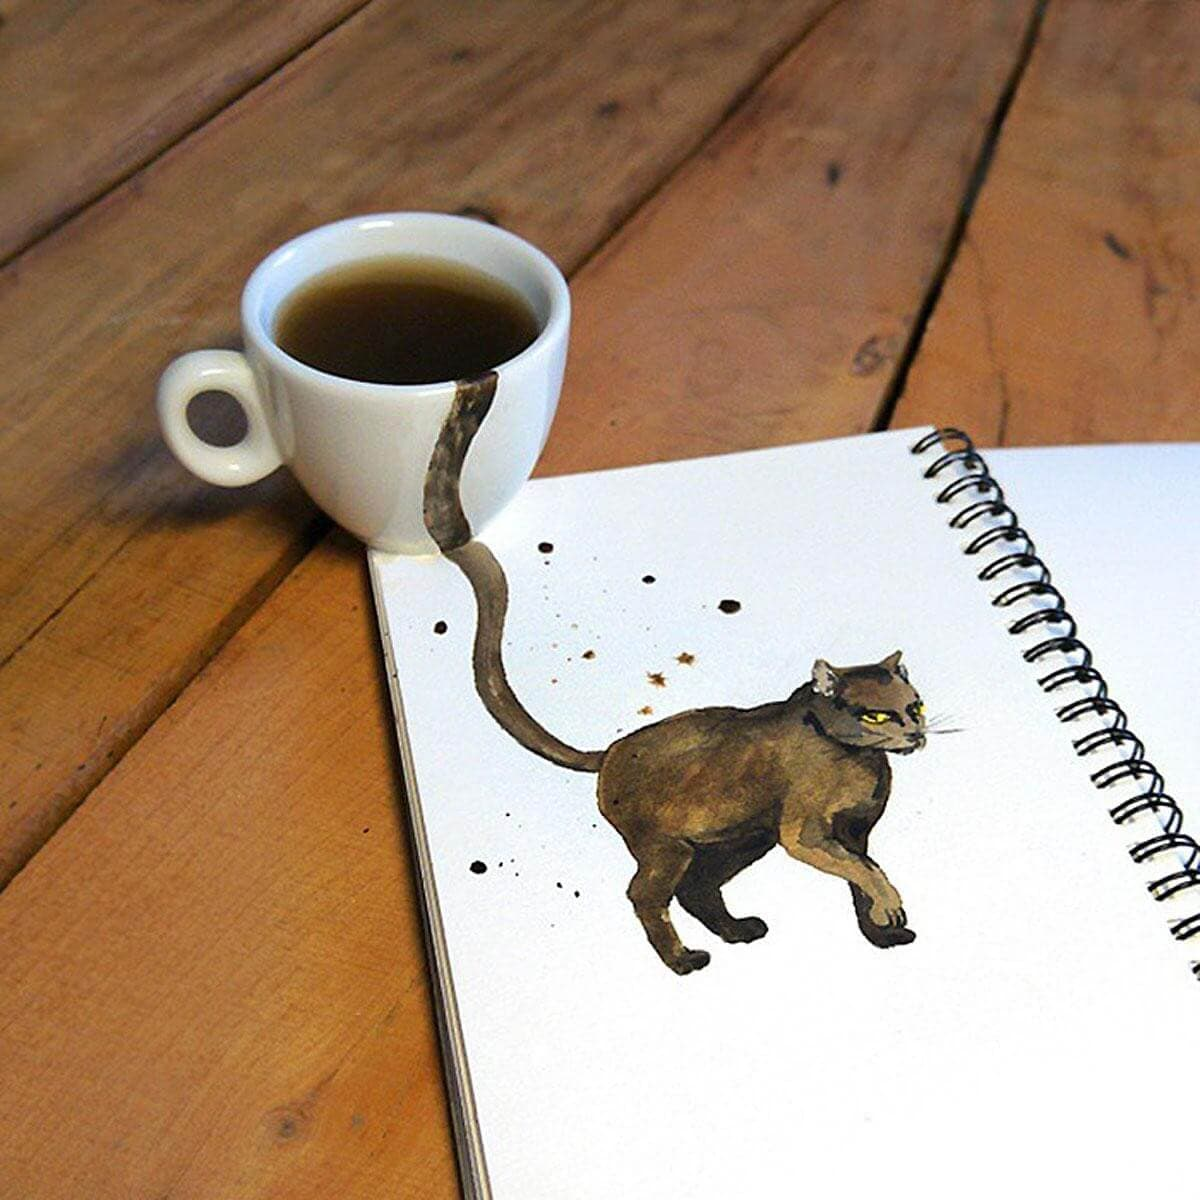 Elena Efremova 4 - Charming Coffee-Colored Cats Popping Out Of Cups